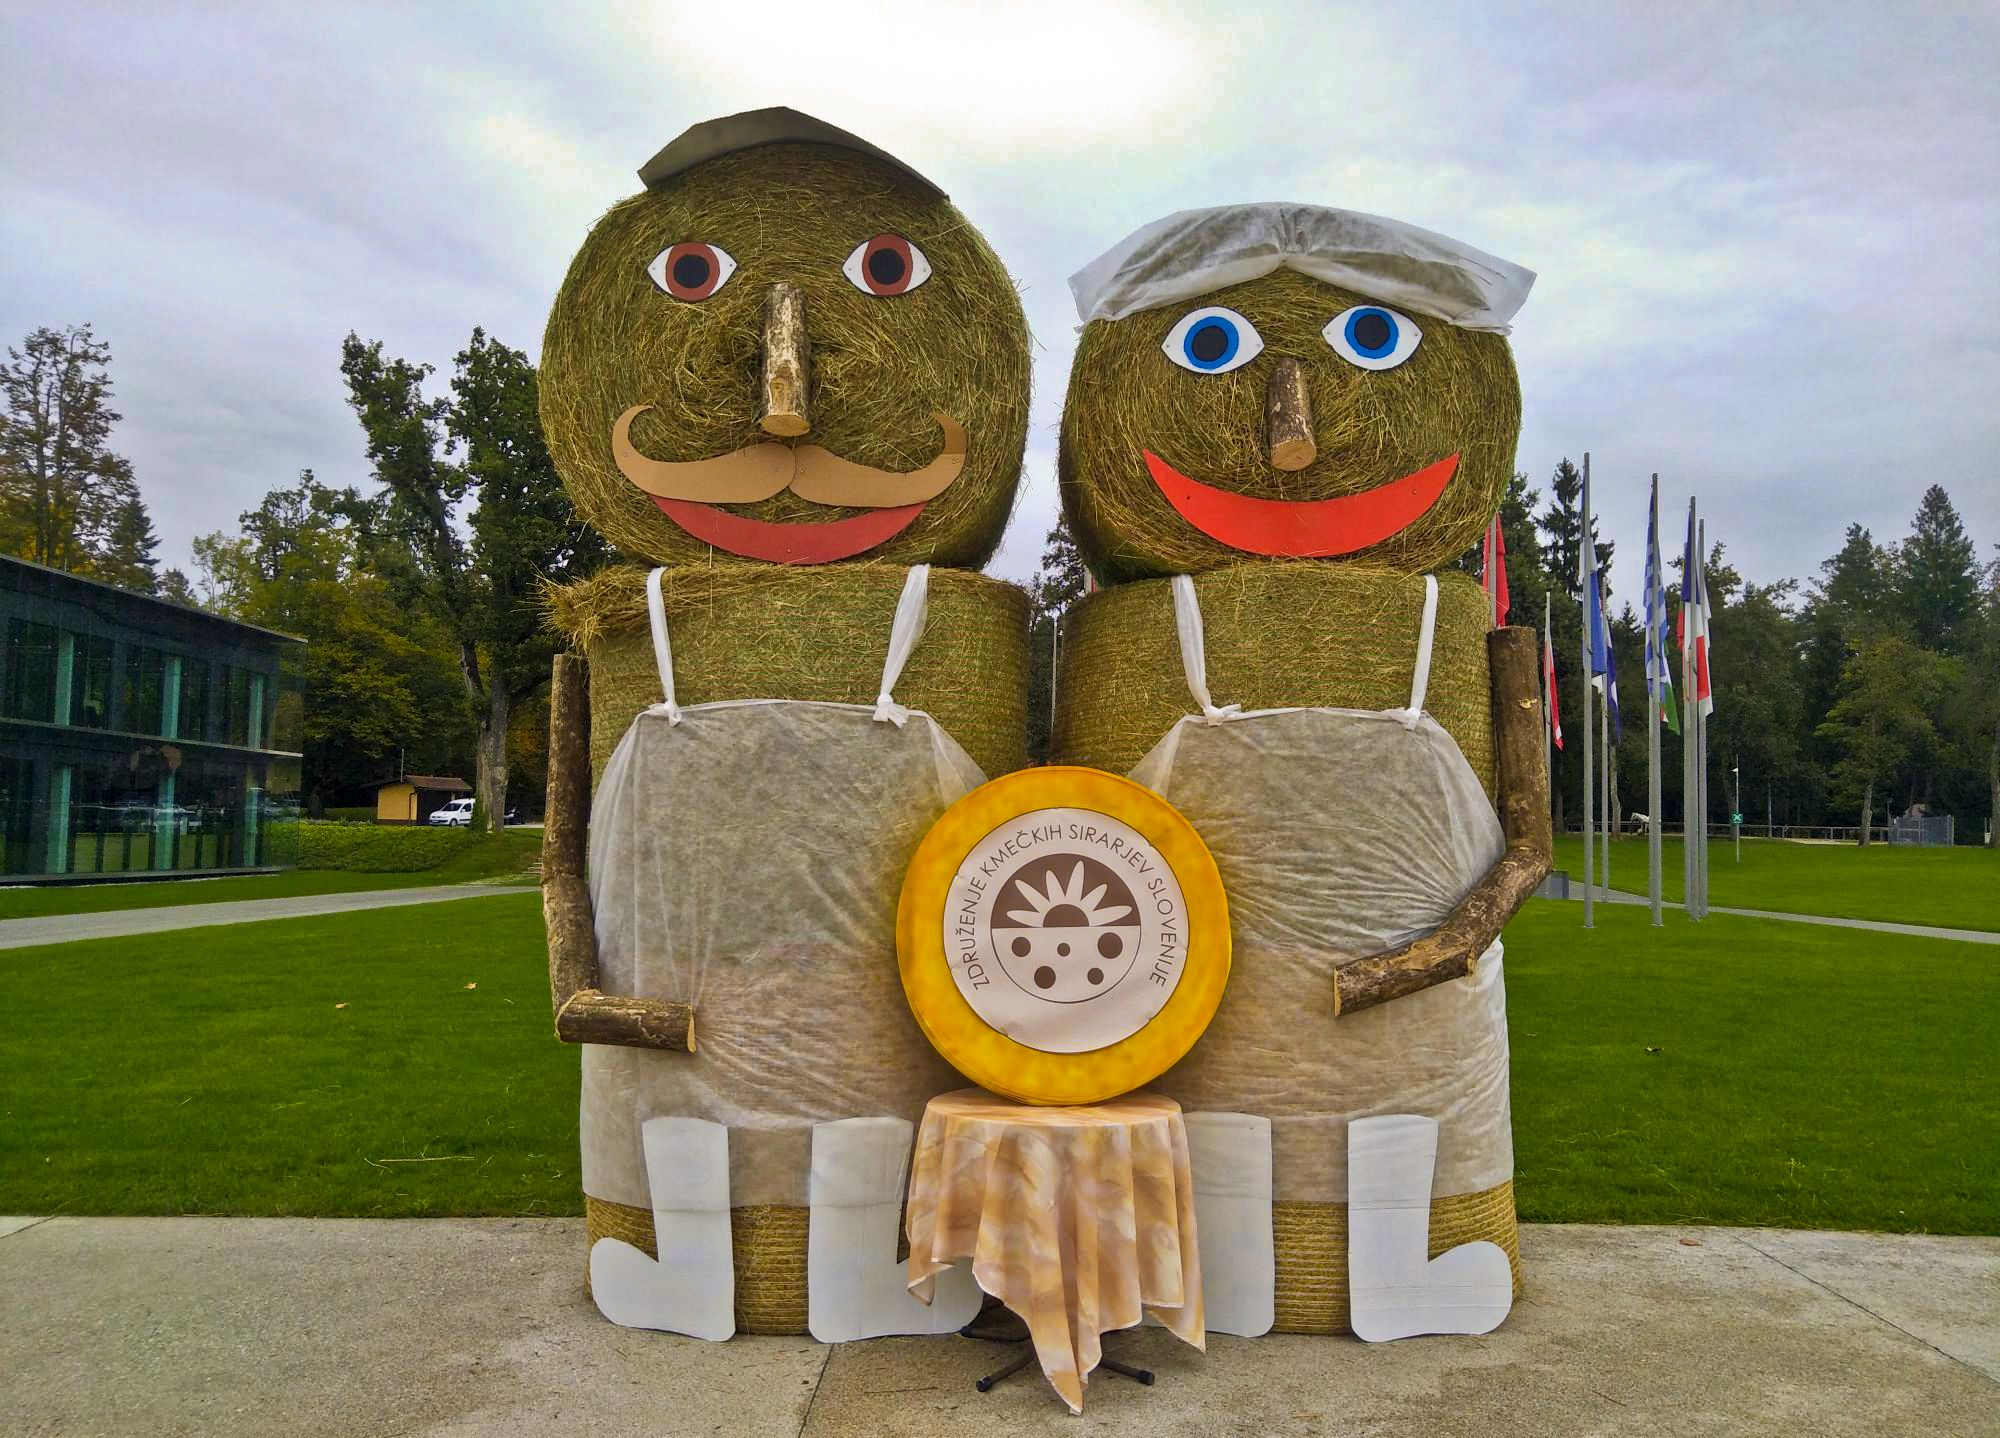 Two Slovene Rural Cheesemakers Association mascots